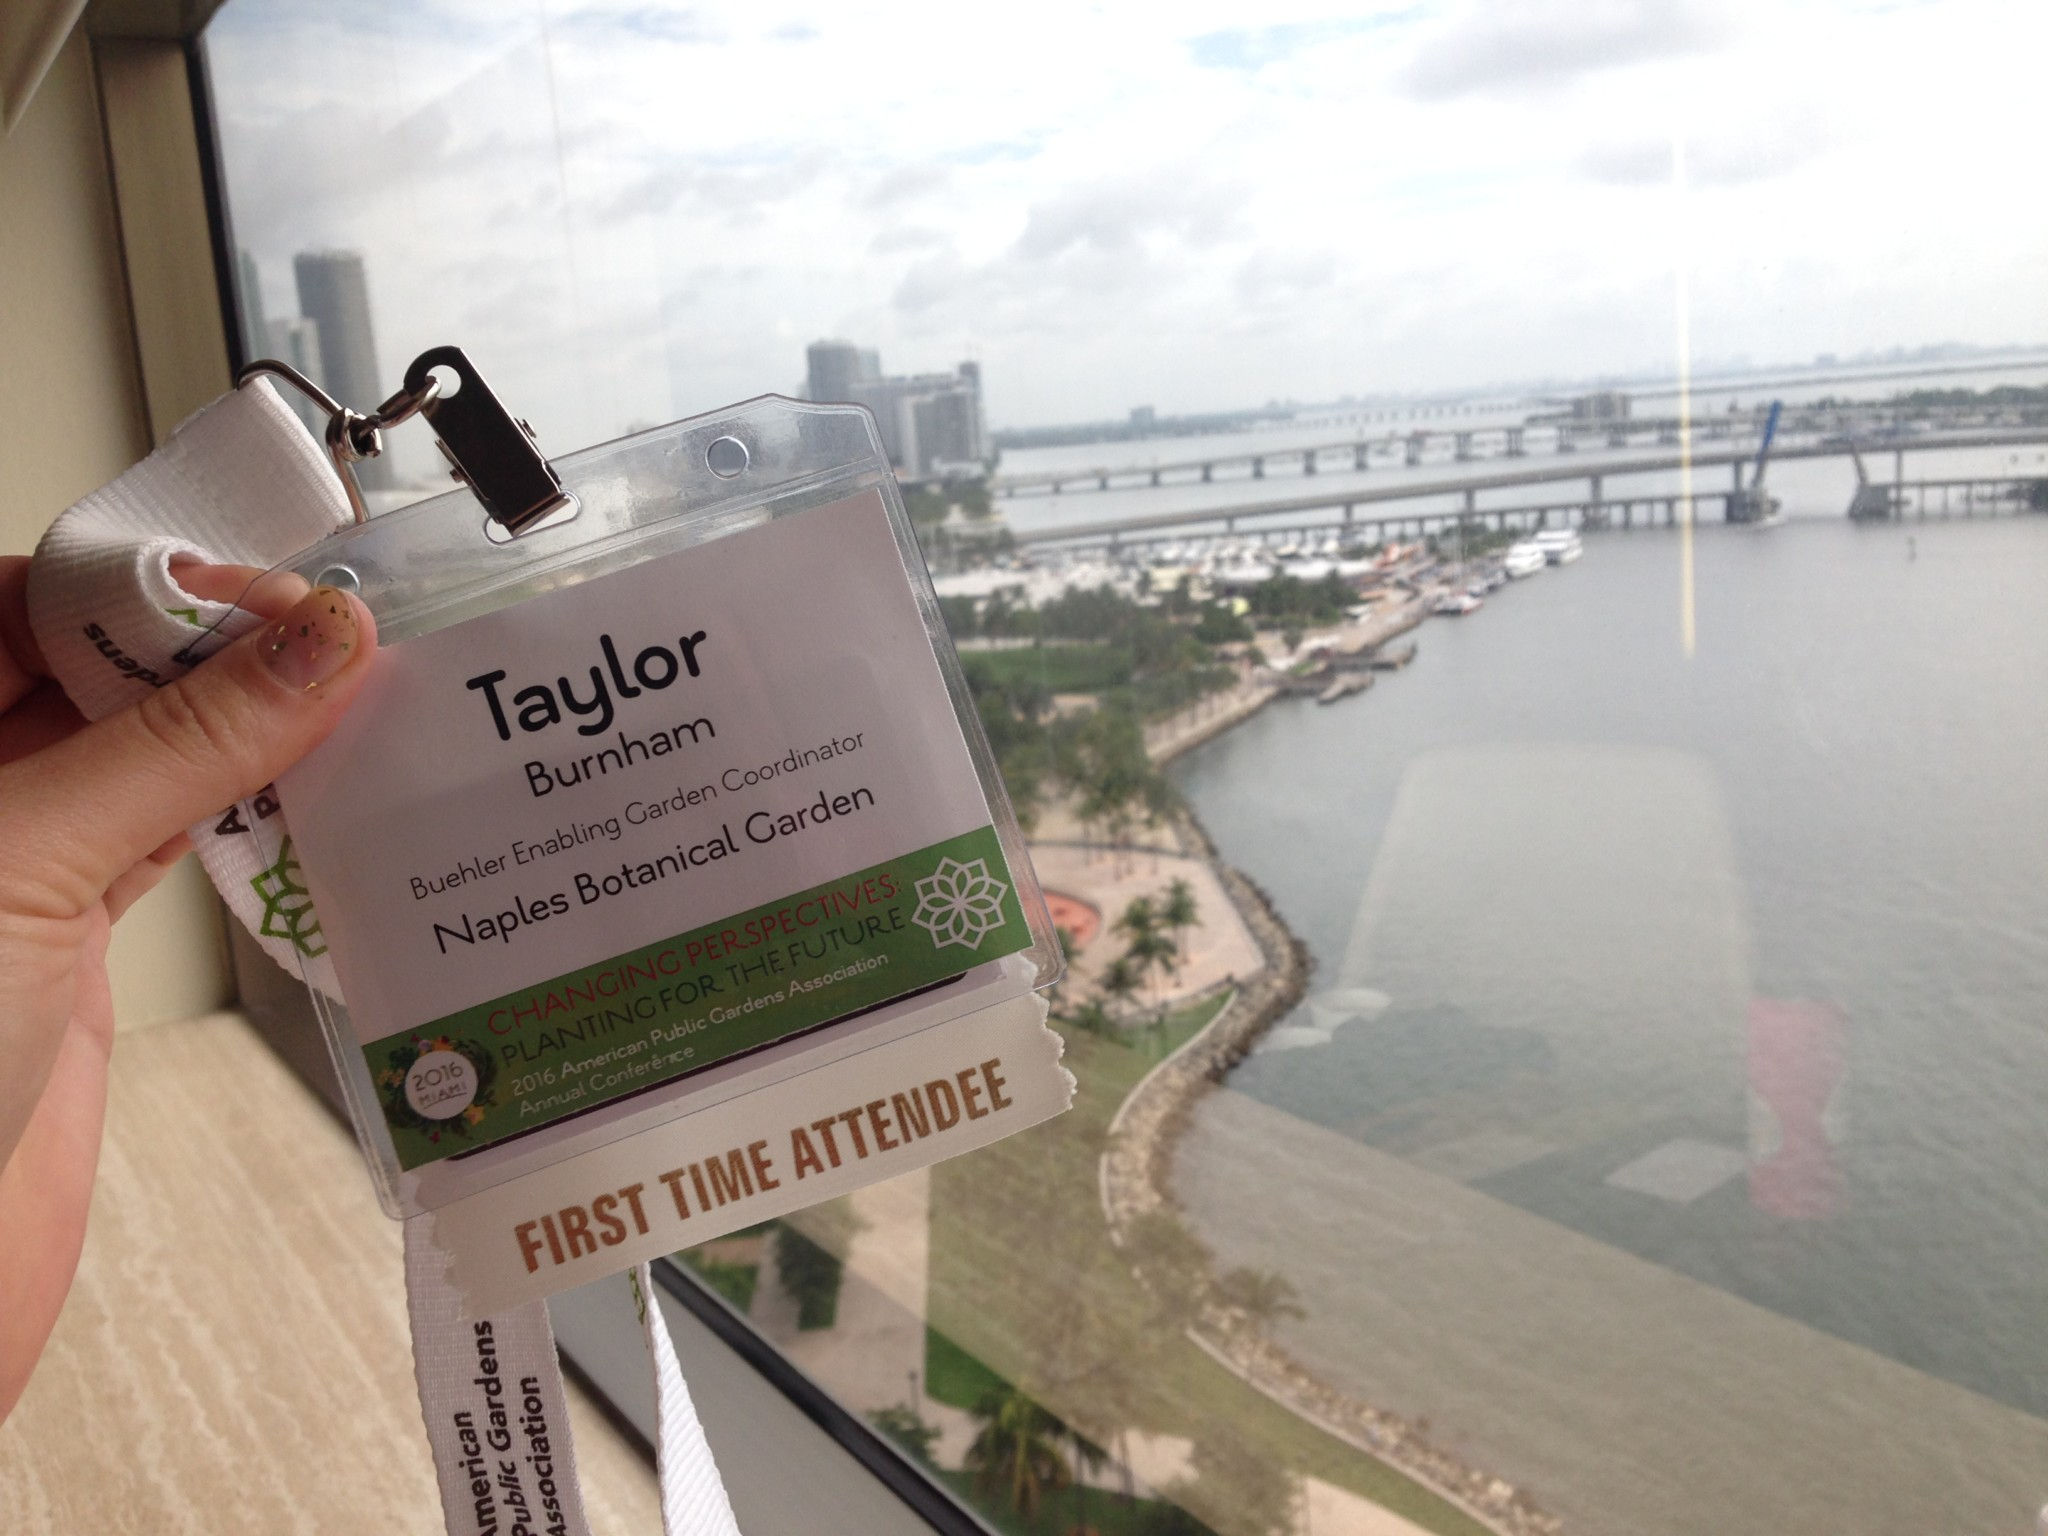 Taylor Burnham Attends the 2016 American Public Gardens Association Conference